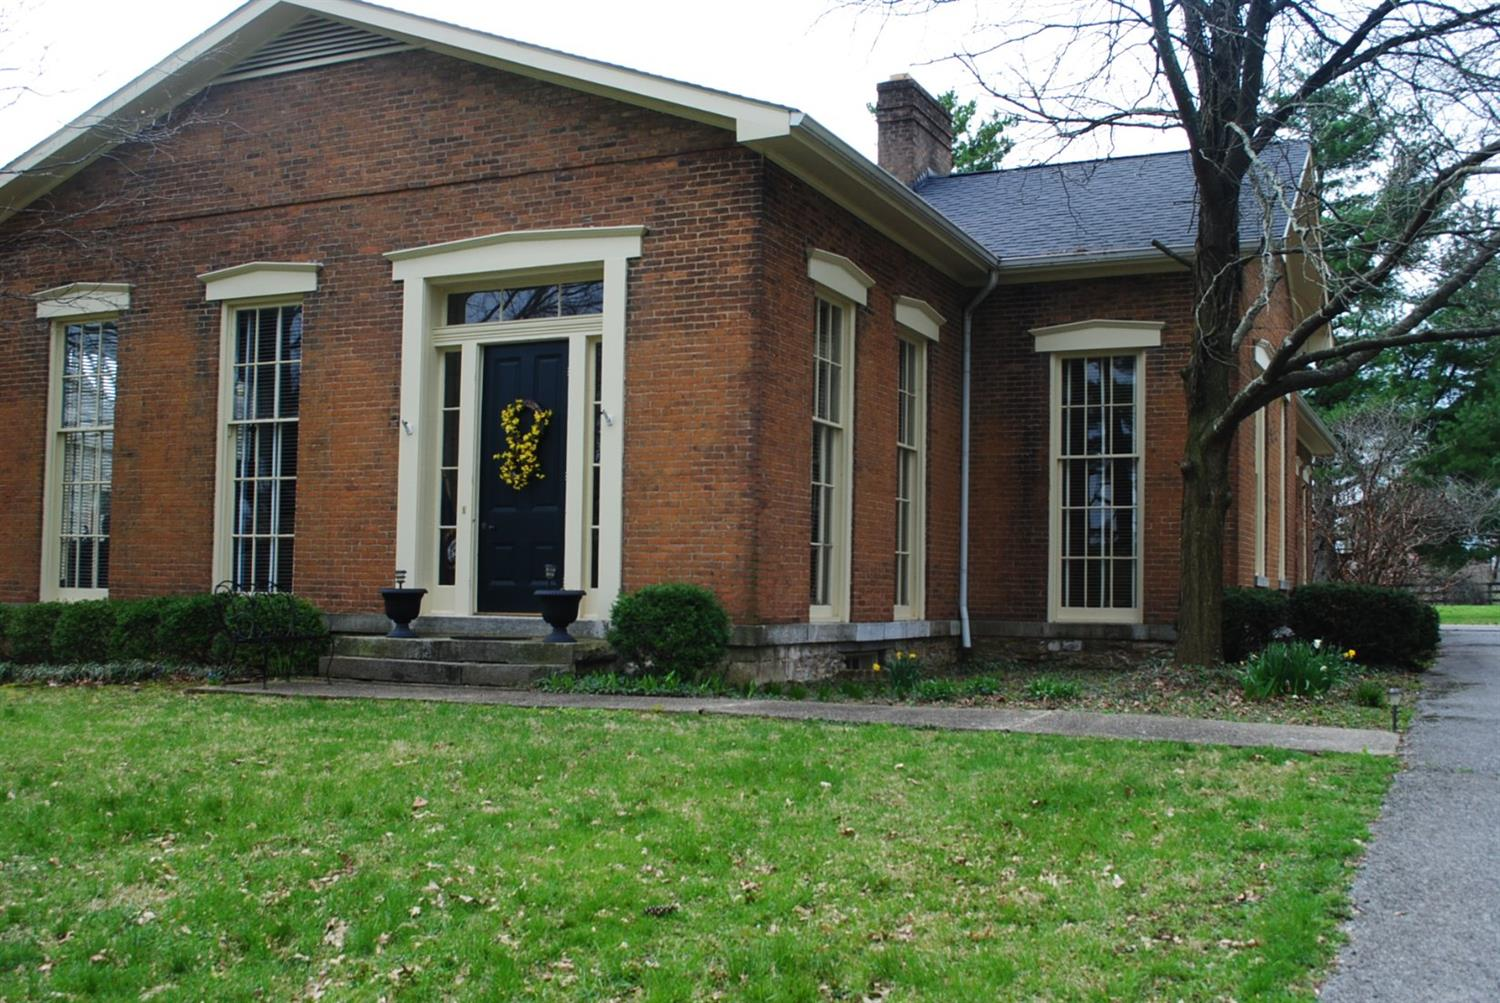 Homes For Sale in Frankfort KY